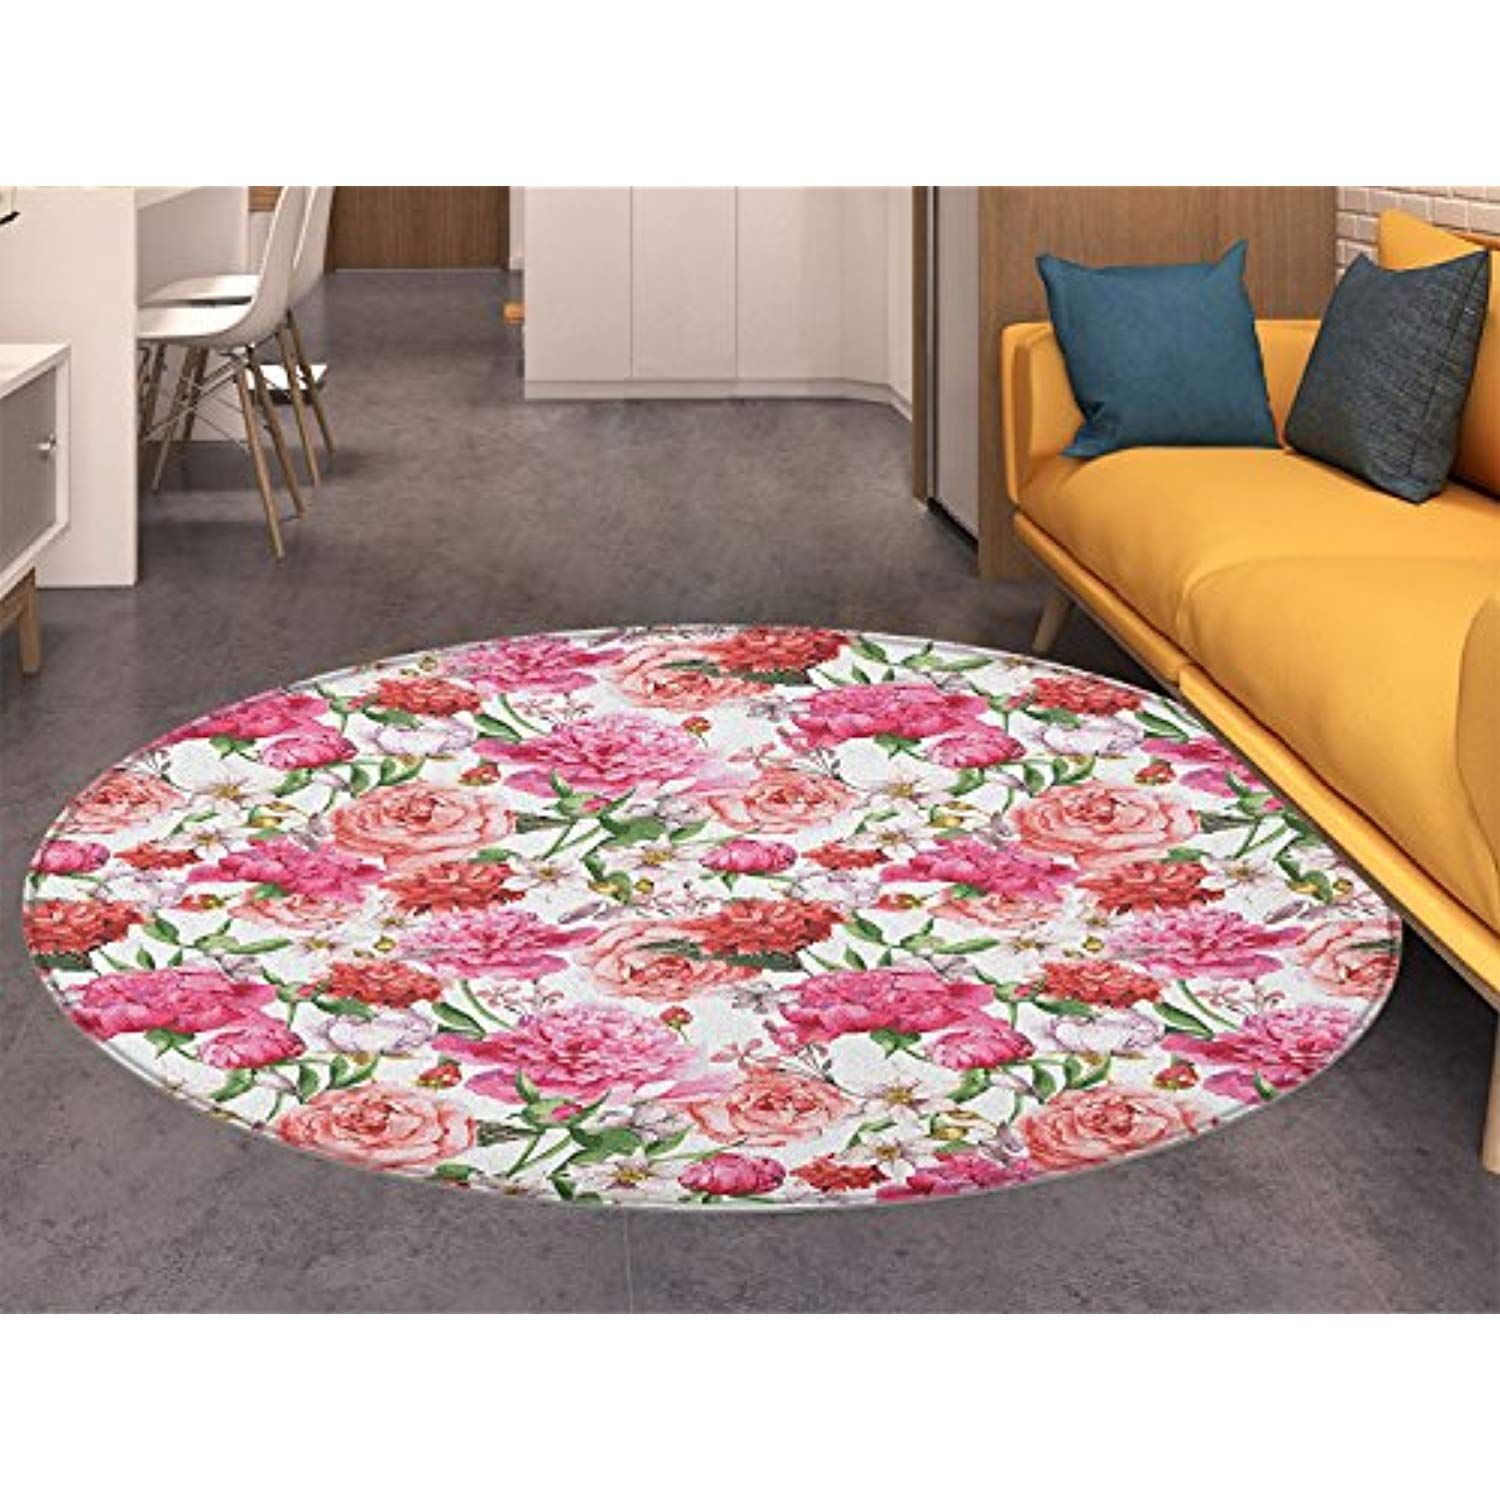 Watercolor Flower Round Area Rug Carpet Victorian Floral Pattern